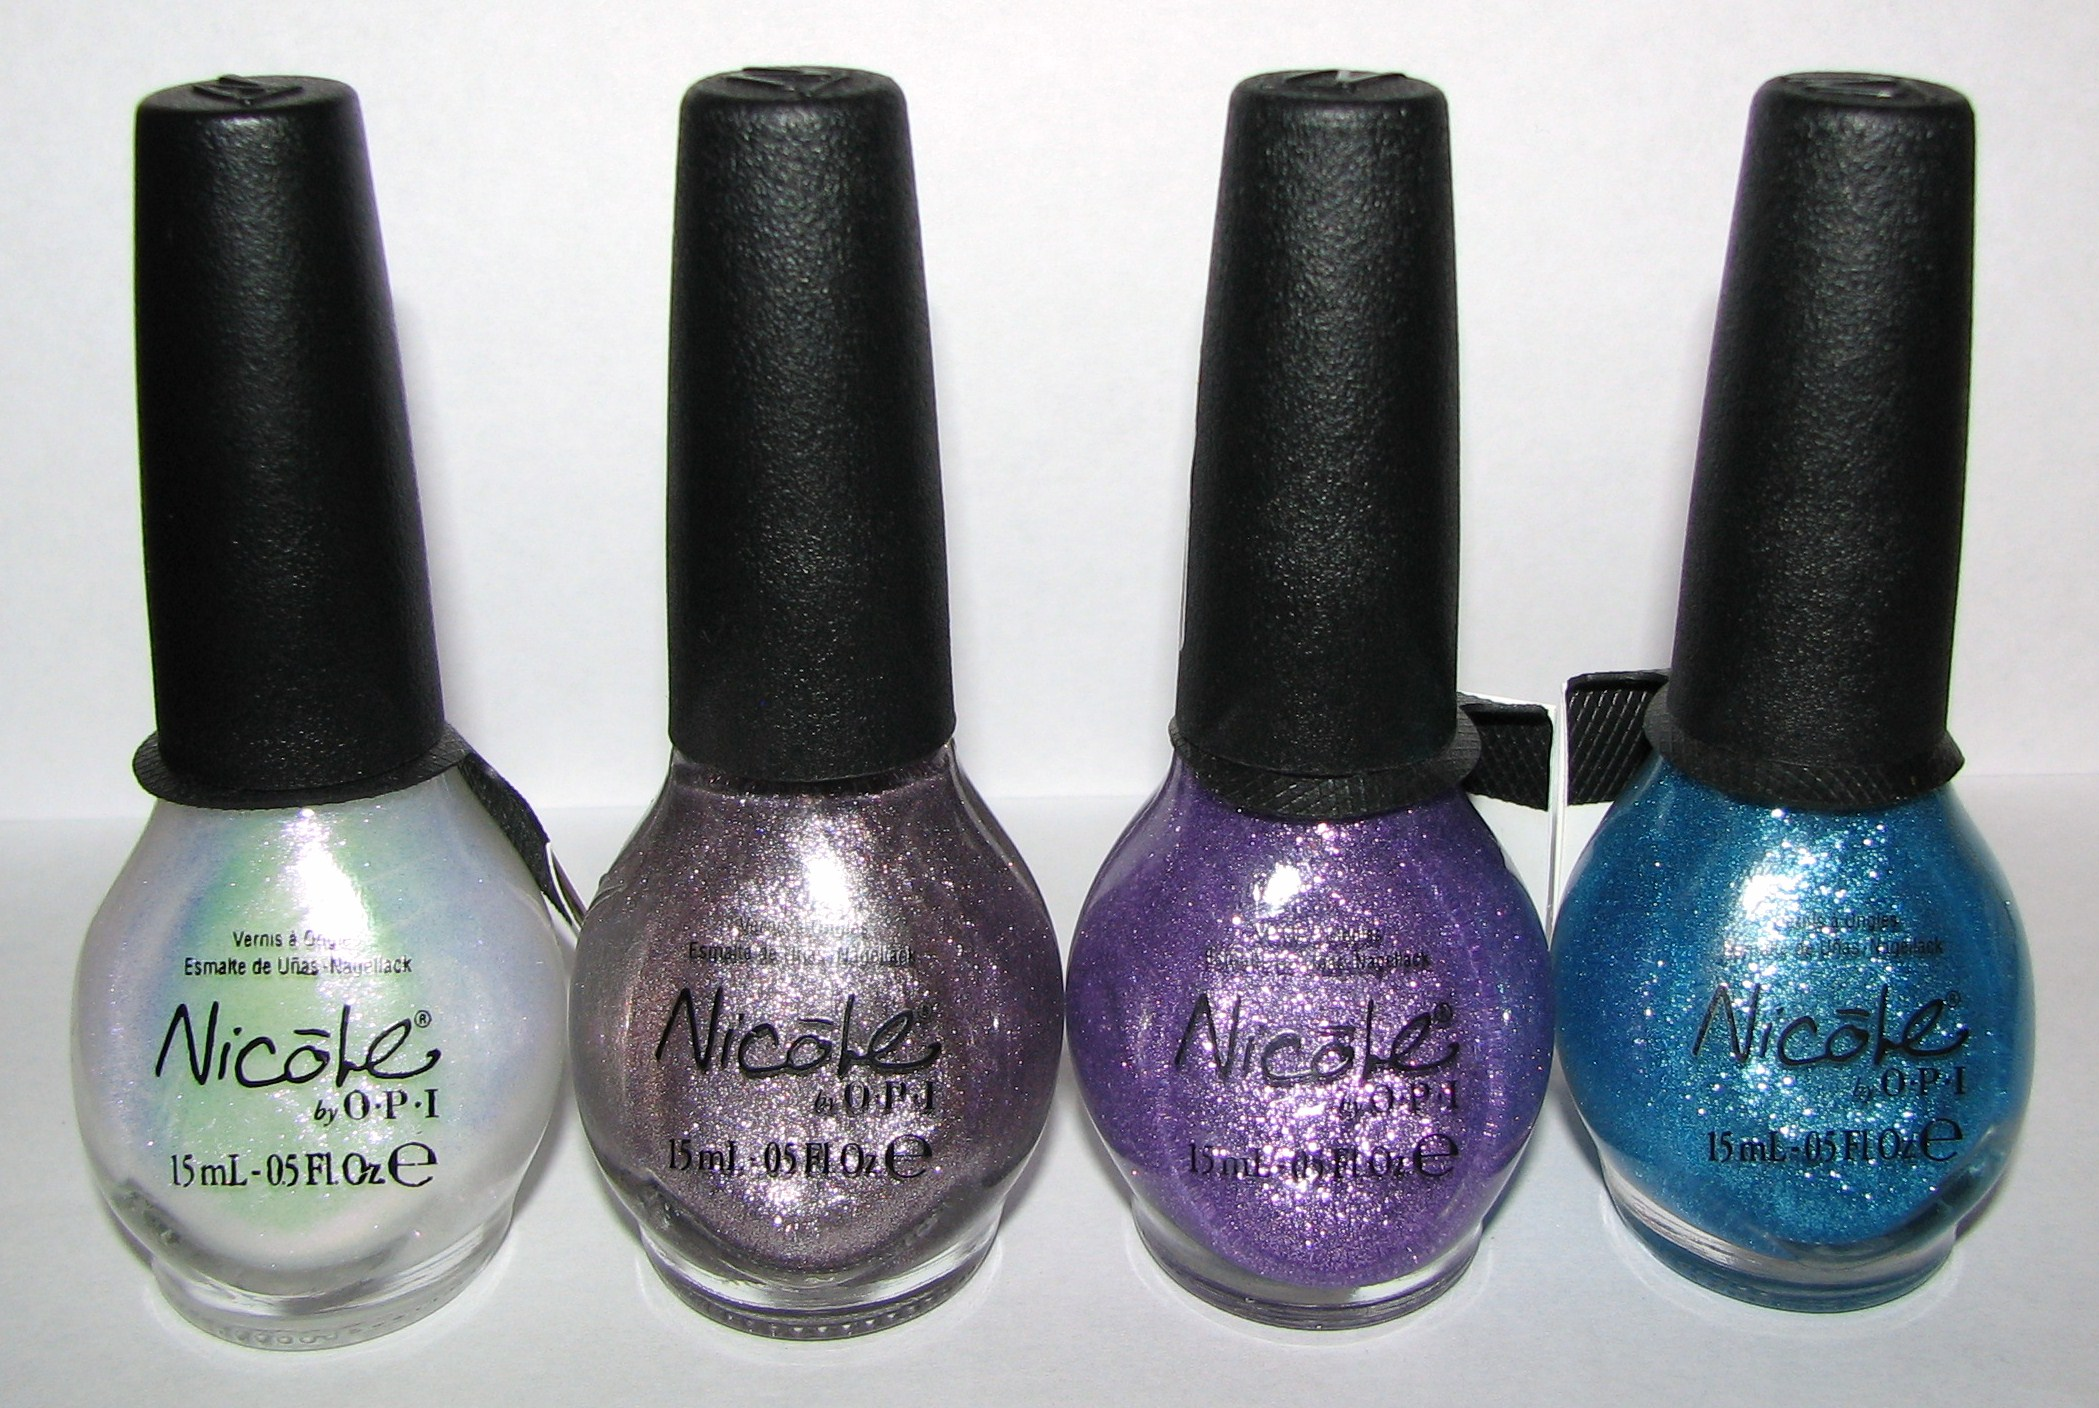 Nicole by OPI Limited Edition TEXTURE COAT Nail Polish Swatches and ...